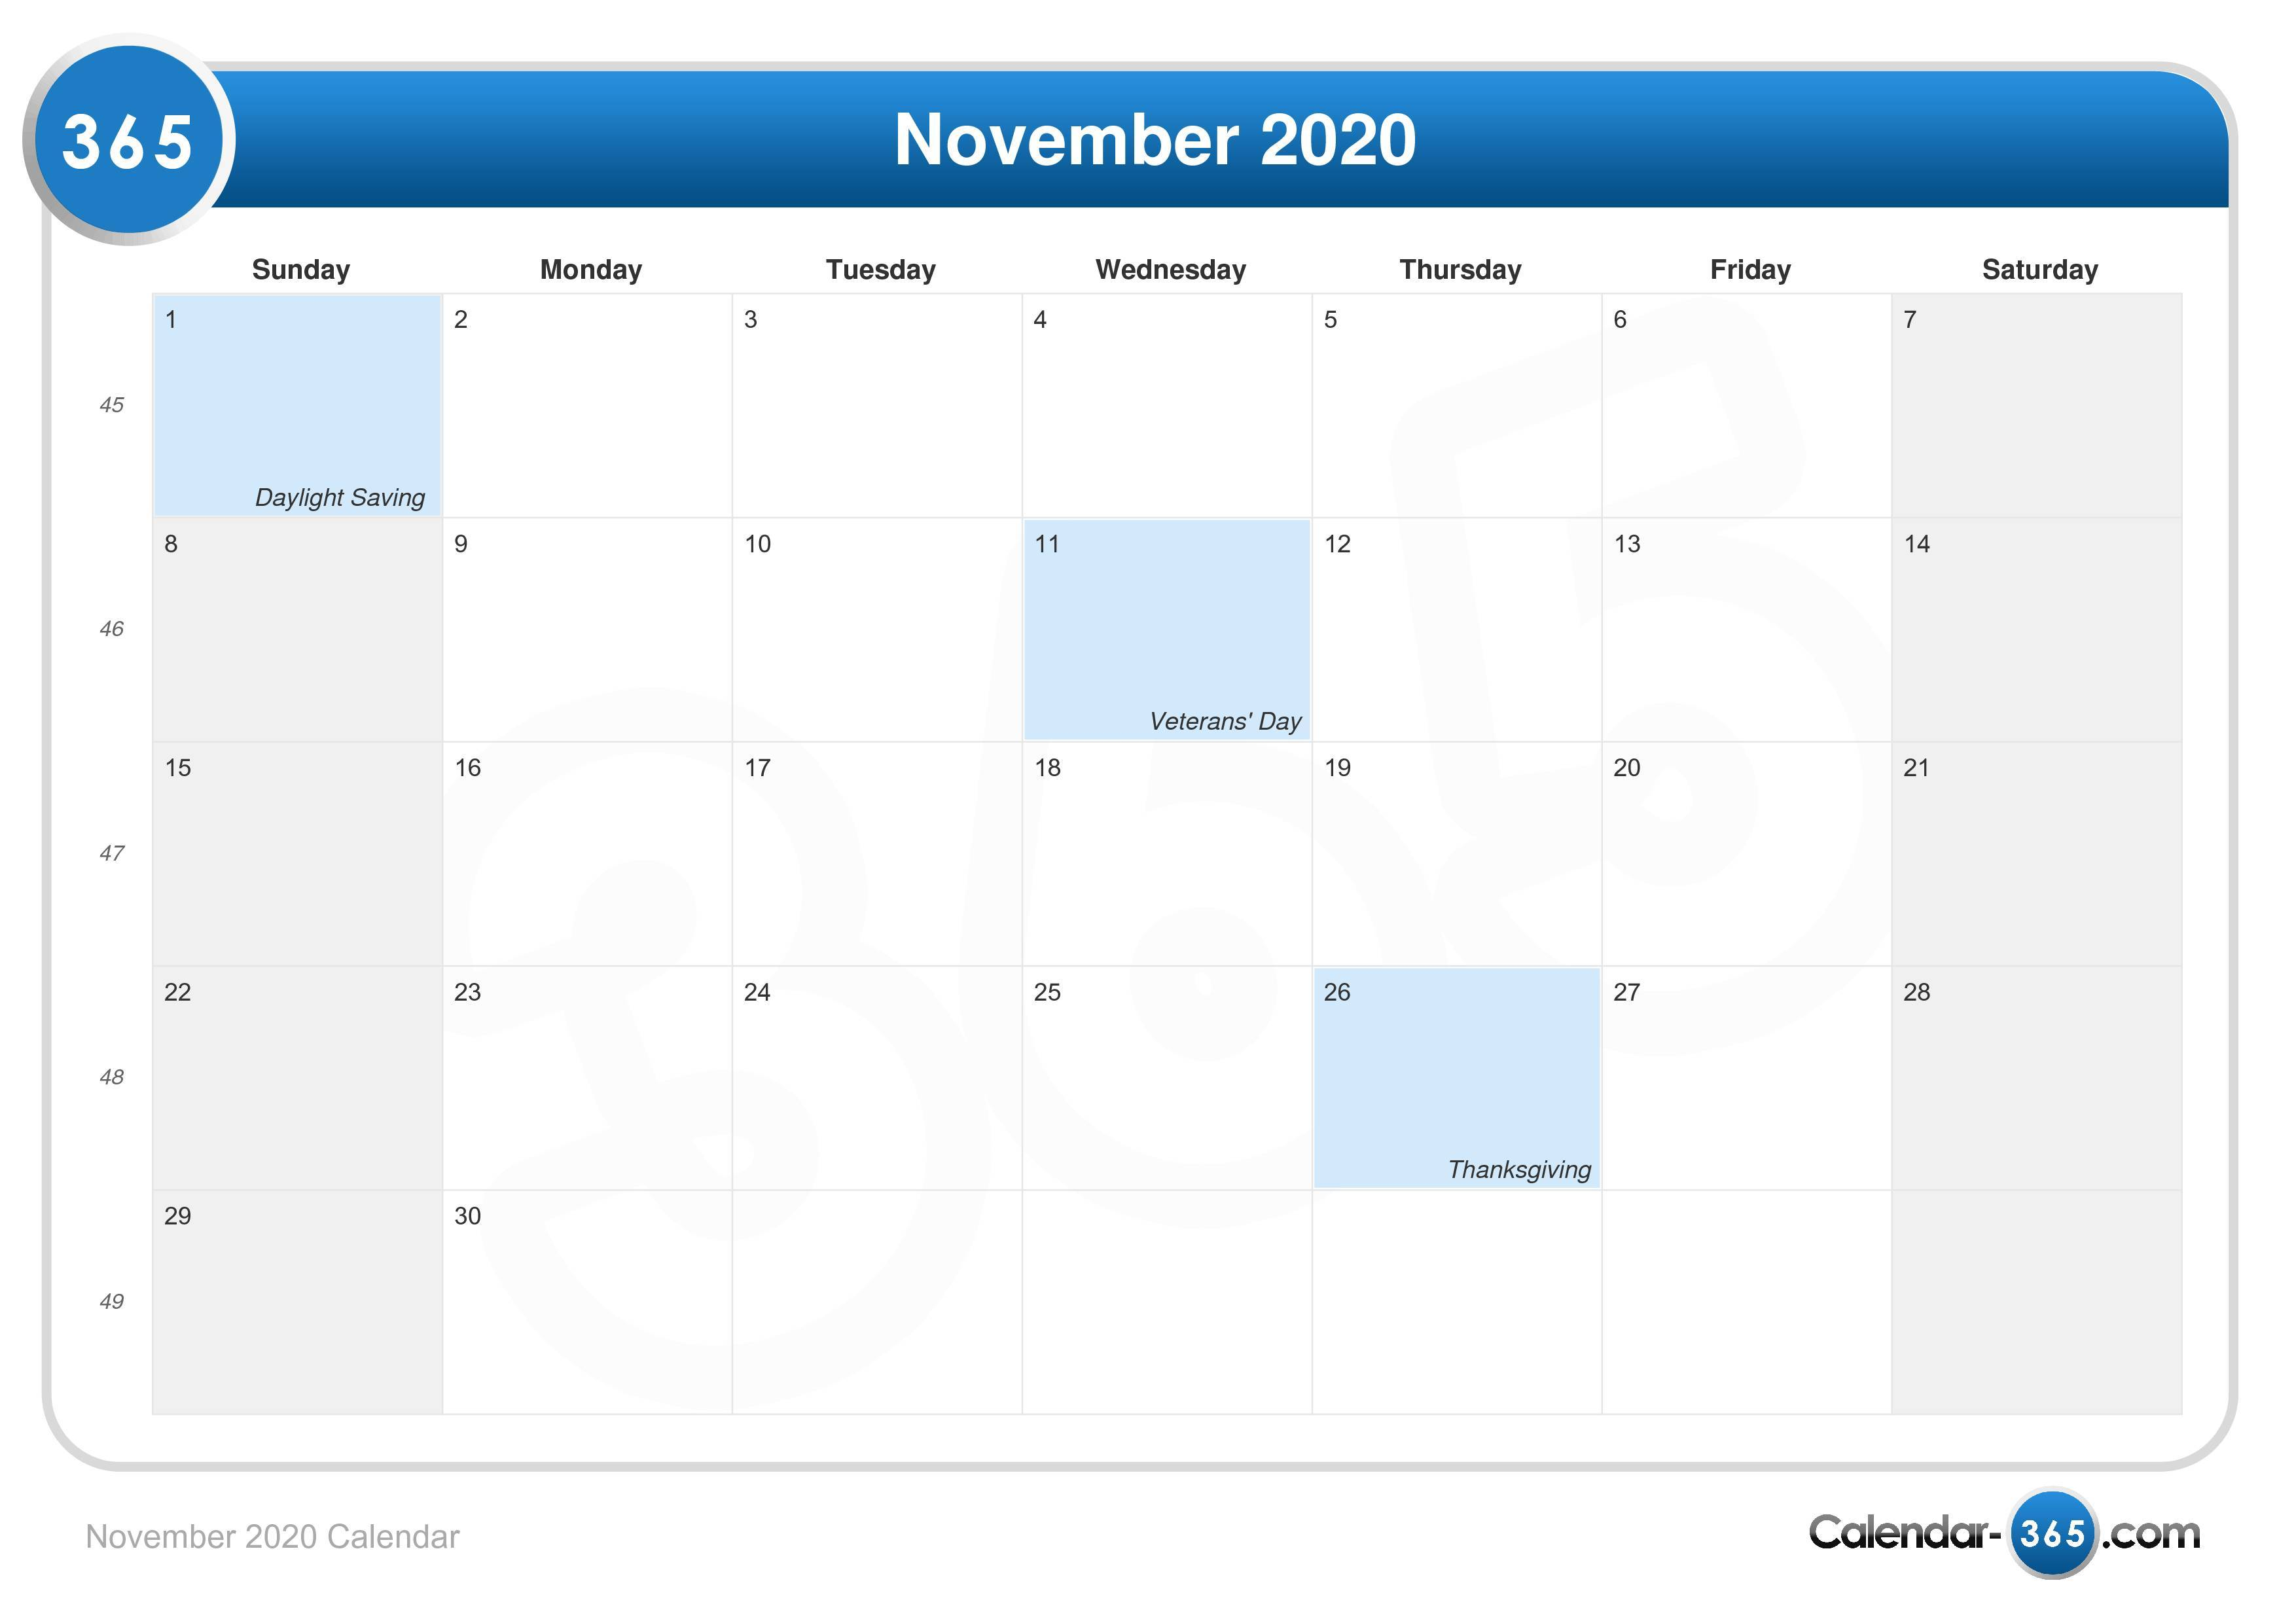 November 2020 Calendar With Holidays November 2020 Calendar